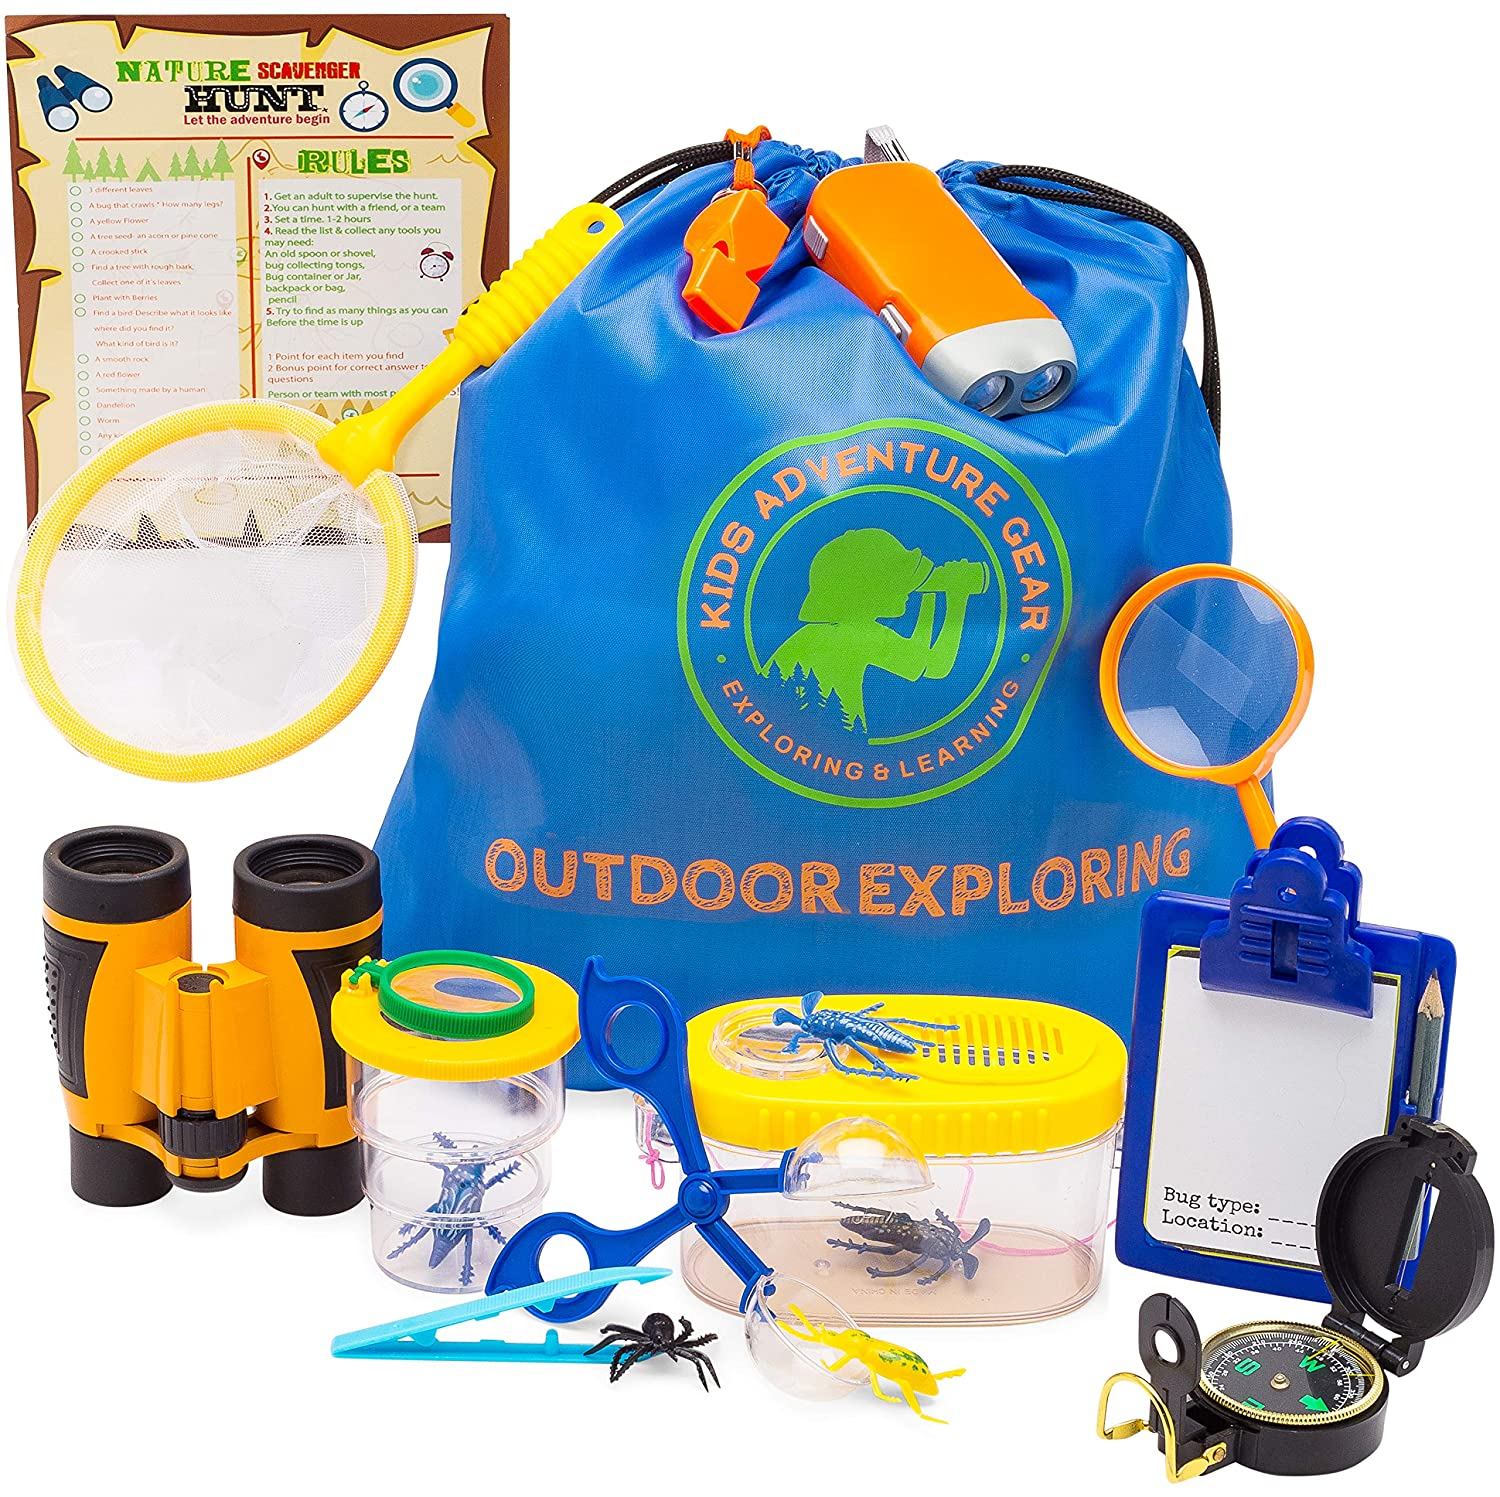 Educational Scavenger Hunt Outdoor Exploration Kit for Kids Magnifying Glass Flashlight Girls Camping Backpack Great Gift for Boys Bug Catcher Compass Hiking Whistle Set of Binoculars